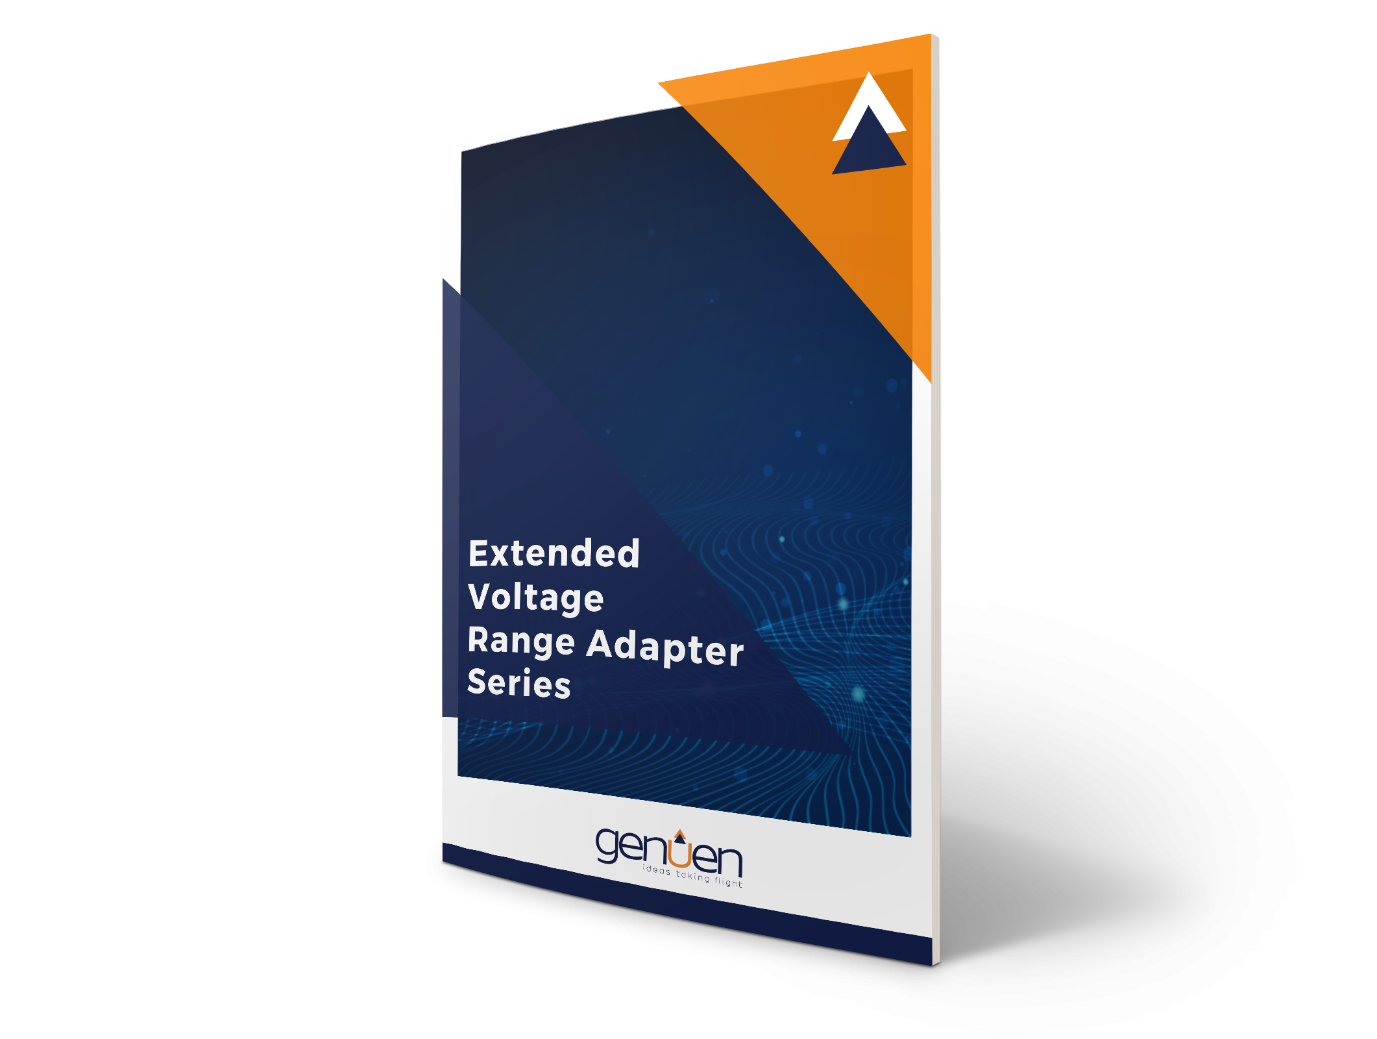 3D Extended Voltage range Adapter Series